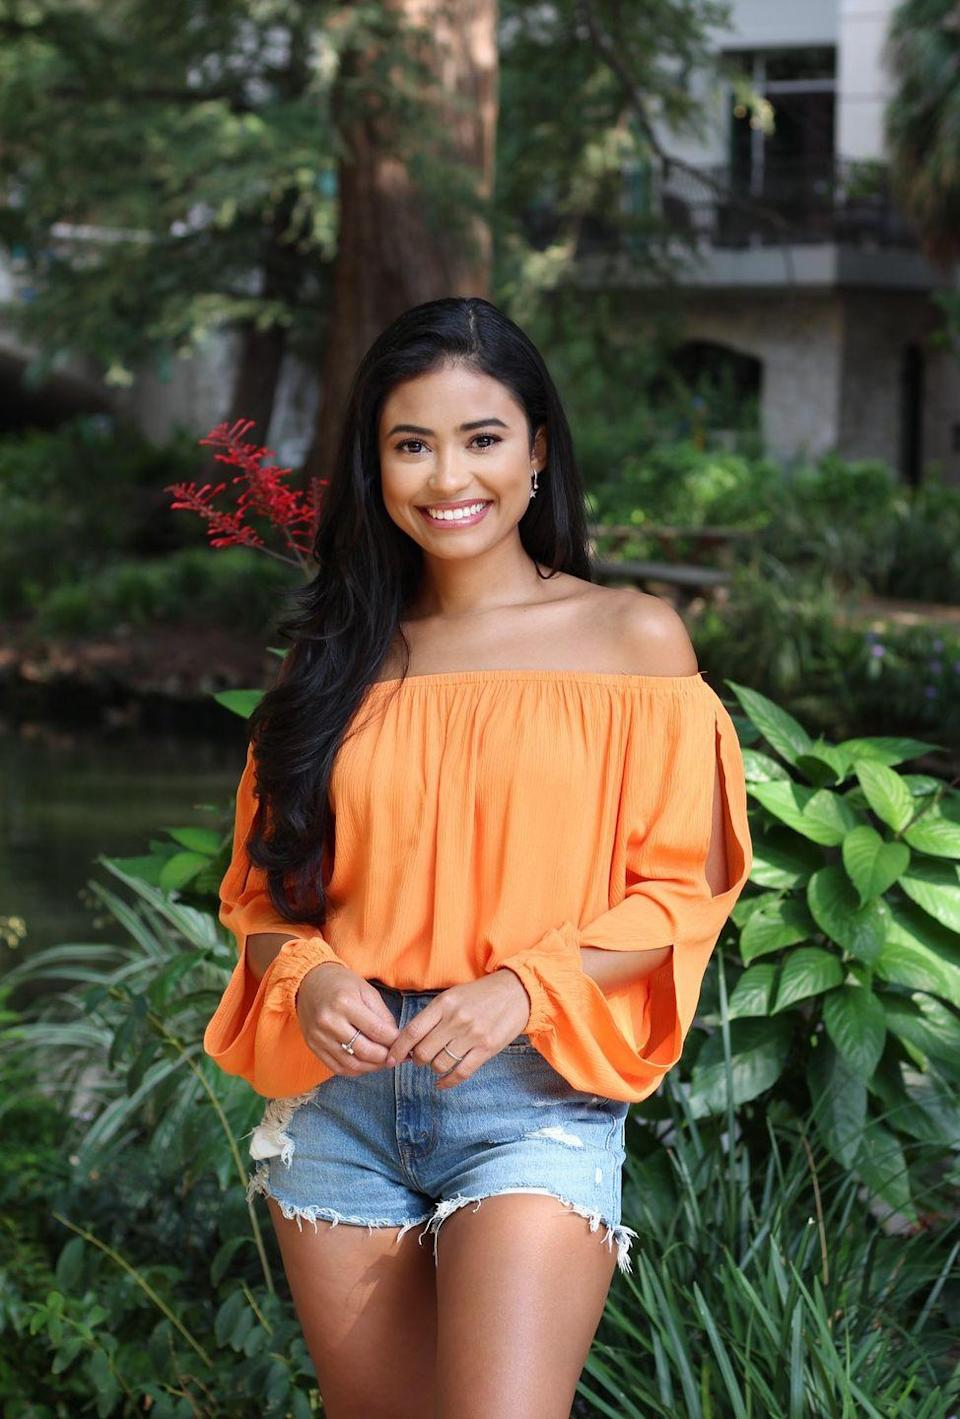 """<p>Jessenia is one of several Texans competing on <em>The Bachelor</em>, and she works as a social media manager, per <a href=""""https://go.redirectingat.com?id=74968X1596630&url=https%3A%2F%2Fwww.linkedin.com%2Fin%2Fjesseniaacruz%2F&sref=https%3A%2F%2Fwww.womenshealthmag.com%2Flife%2Fg34286200%2Fbachelor-contestants-season-25-matt-james%2F"""" rel=""""nofollow noopener"""" target=""""_blank"""" data-ylk=""""slk:LinkedIn"""" class=""""link rapid-noclick-resp"""">LinkedIn</a>. She has a B.S. in communications and media studies from the University of Texas San Antonio.</p><p>Jess also shared in her Instagram bio: """"when joy is a habit, love is a reflex."""" Jessenia also keeps up a disposable film diary at @disposalesbyjess. She's a former pageant girl, Miss El Paso, with Hannah B. vibes.<br></p><p><strong>Age: 27</strong></p><p><strong>Hometown: </strong>San Antonio, TX</p><p><strong>I</strong><strong>n</strong><strong>stagram: <a href=""""https://www.instagram.com/calypsocruz/"""" rel=""""nofollow noopener"""" target=""""_blank"""" data-ylk=""""slk:@calypsocruz"""" class=""""link rapid-noclick-resp"""">@calypsocruz</a></strong></p>"""